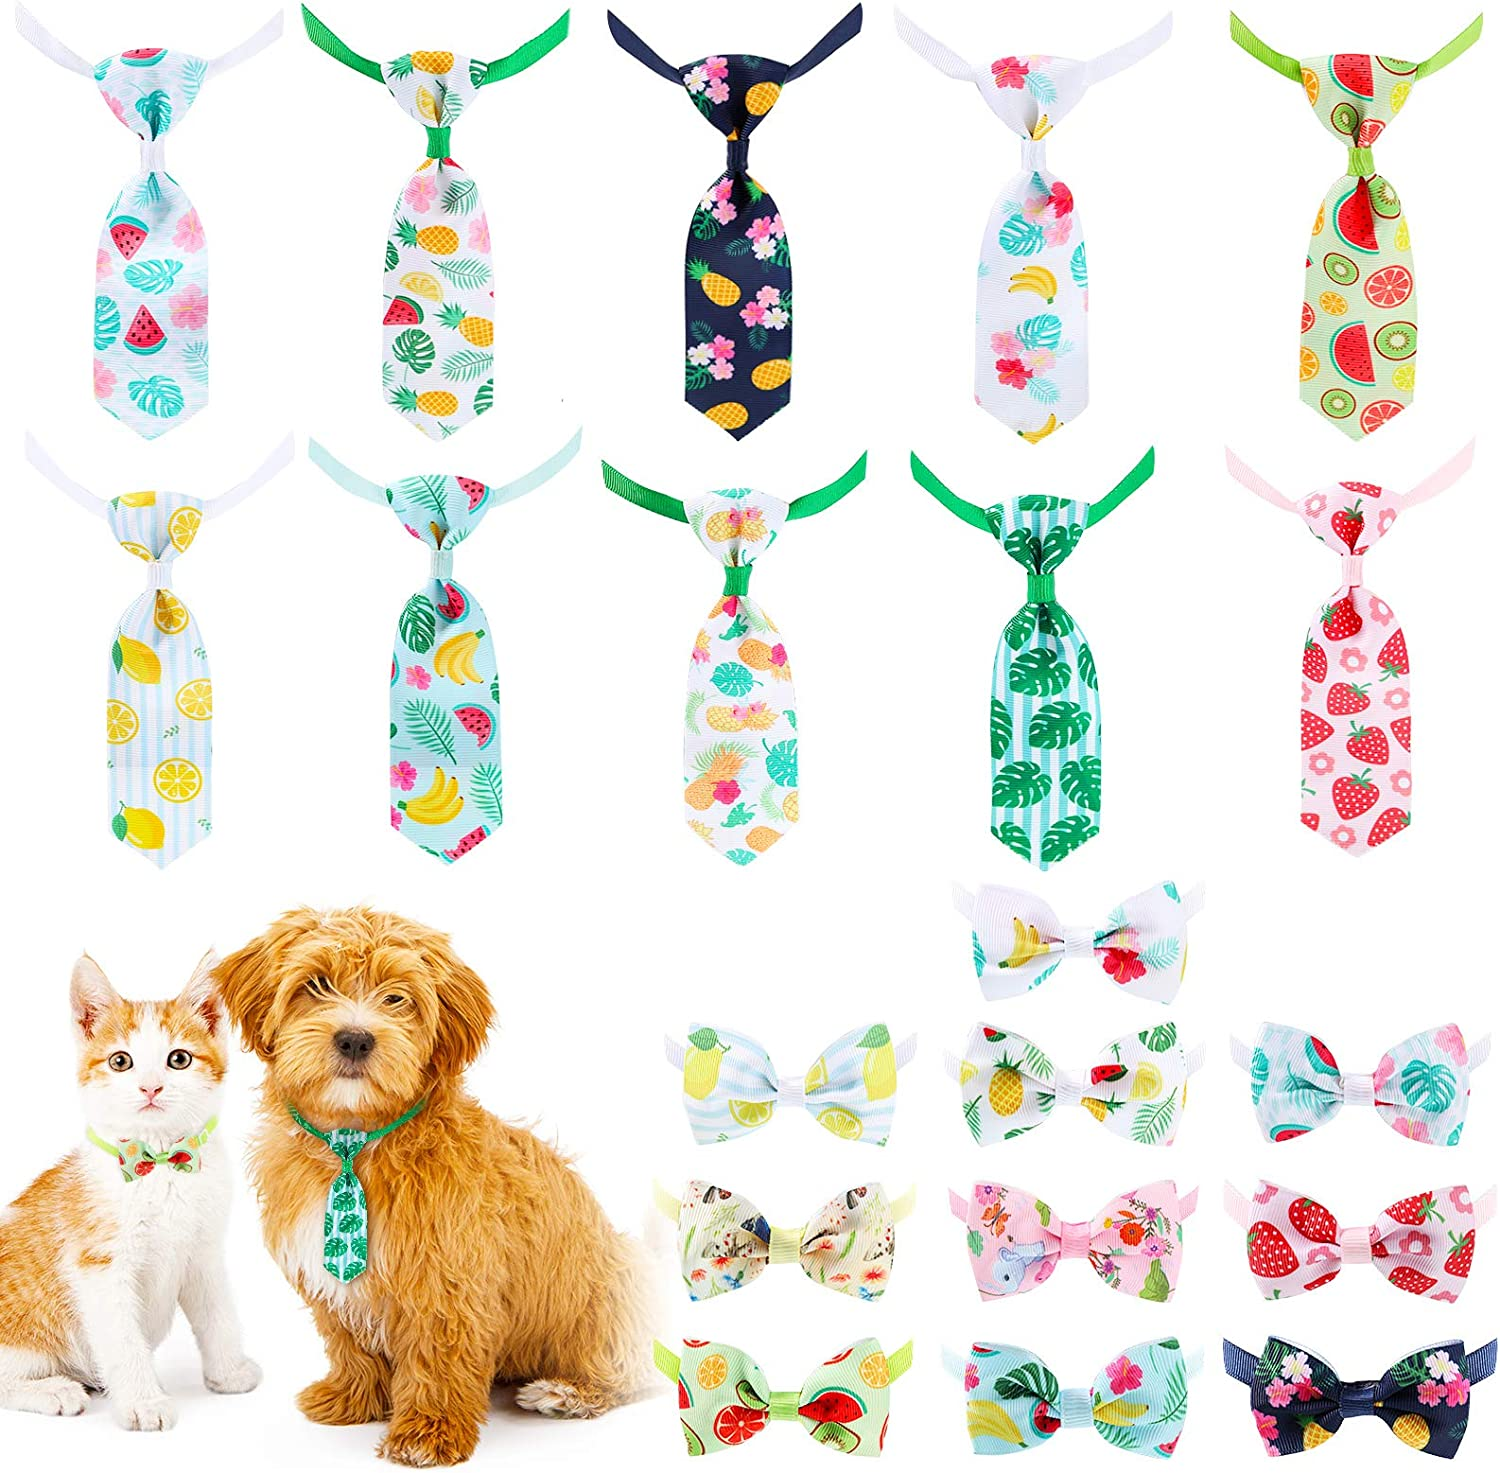 Max 72% OFF 20 New Shipping Free Pieces Dog Ties Cat Bow with Neckties Festival Adjus